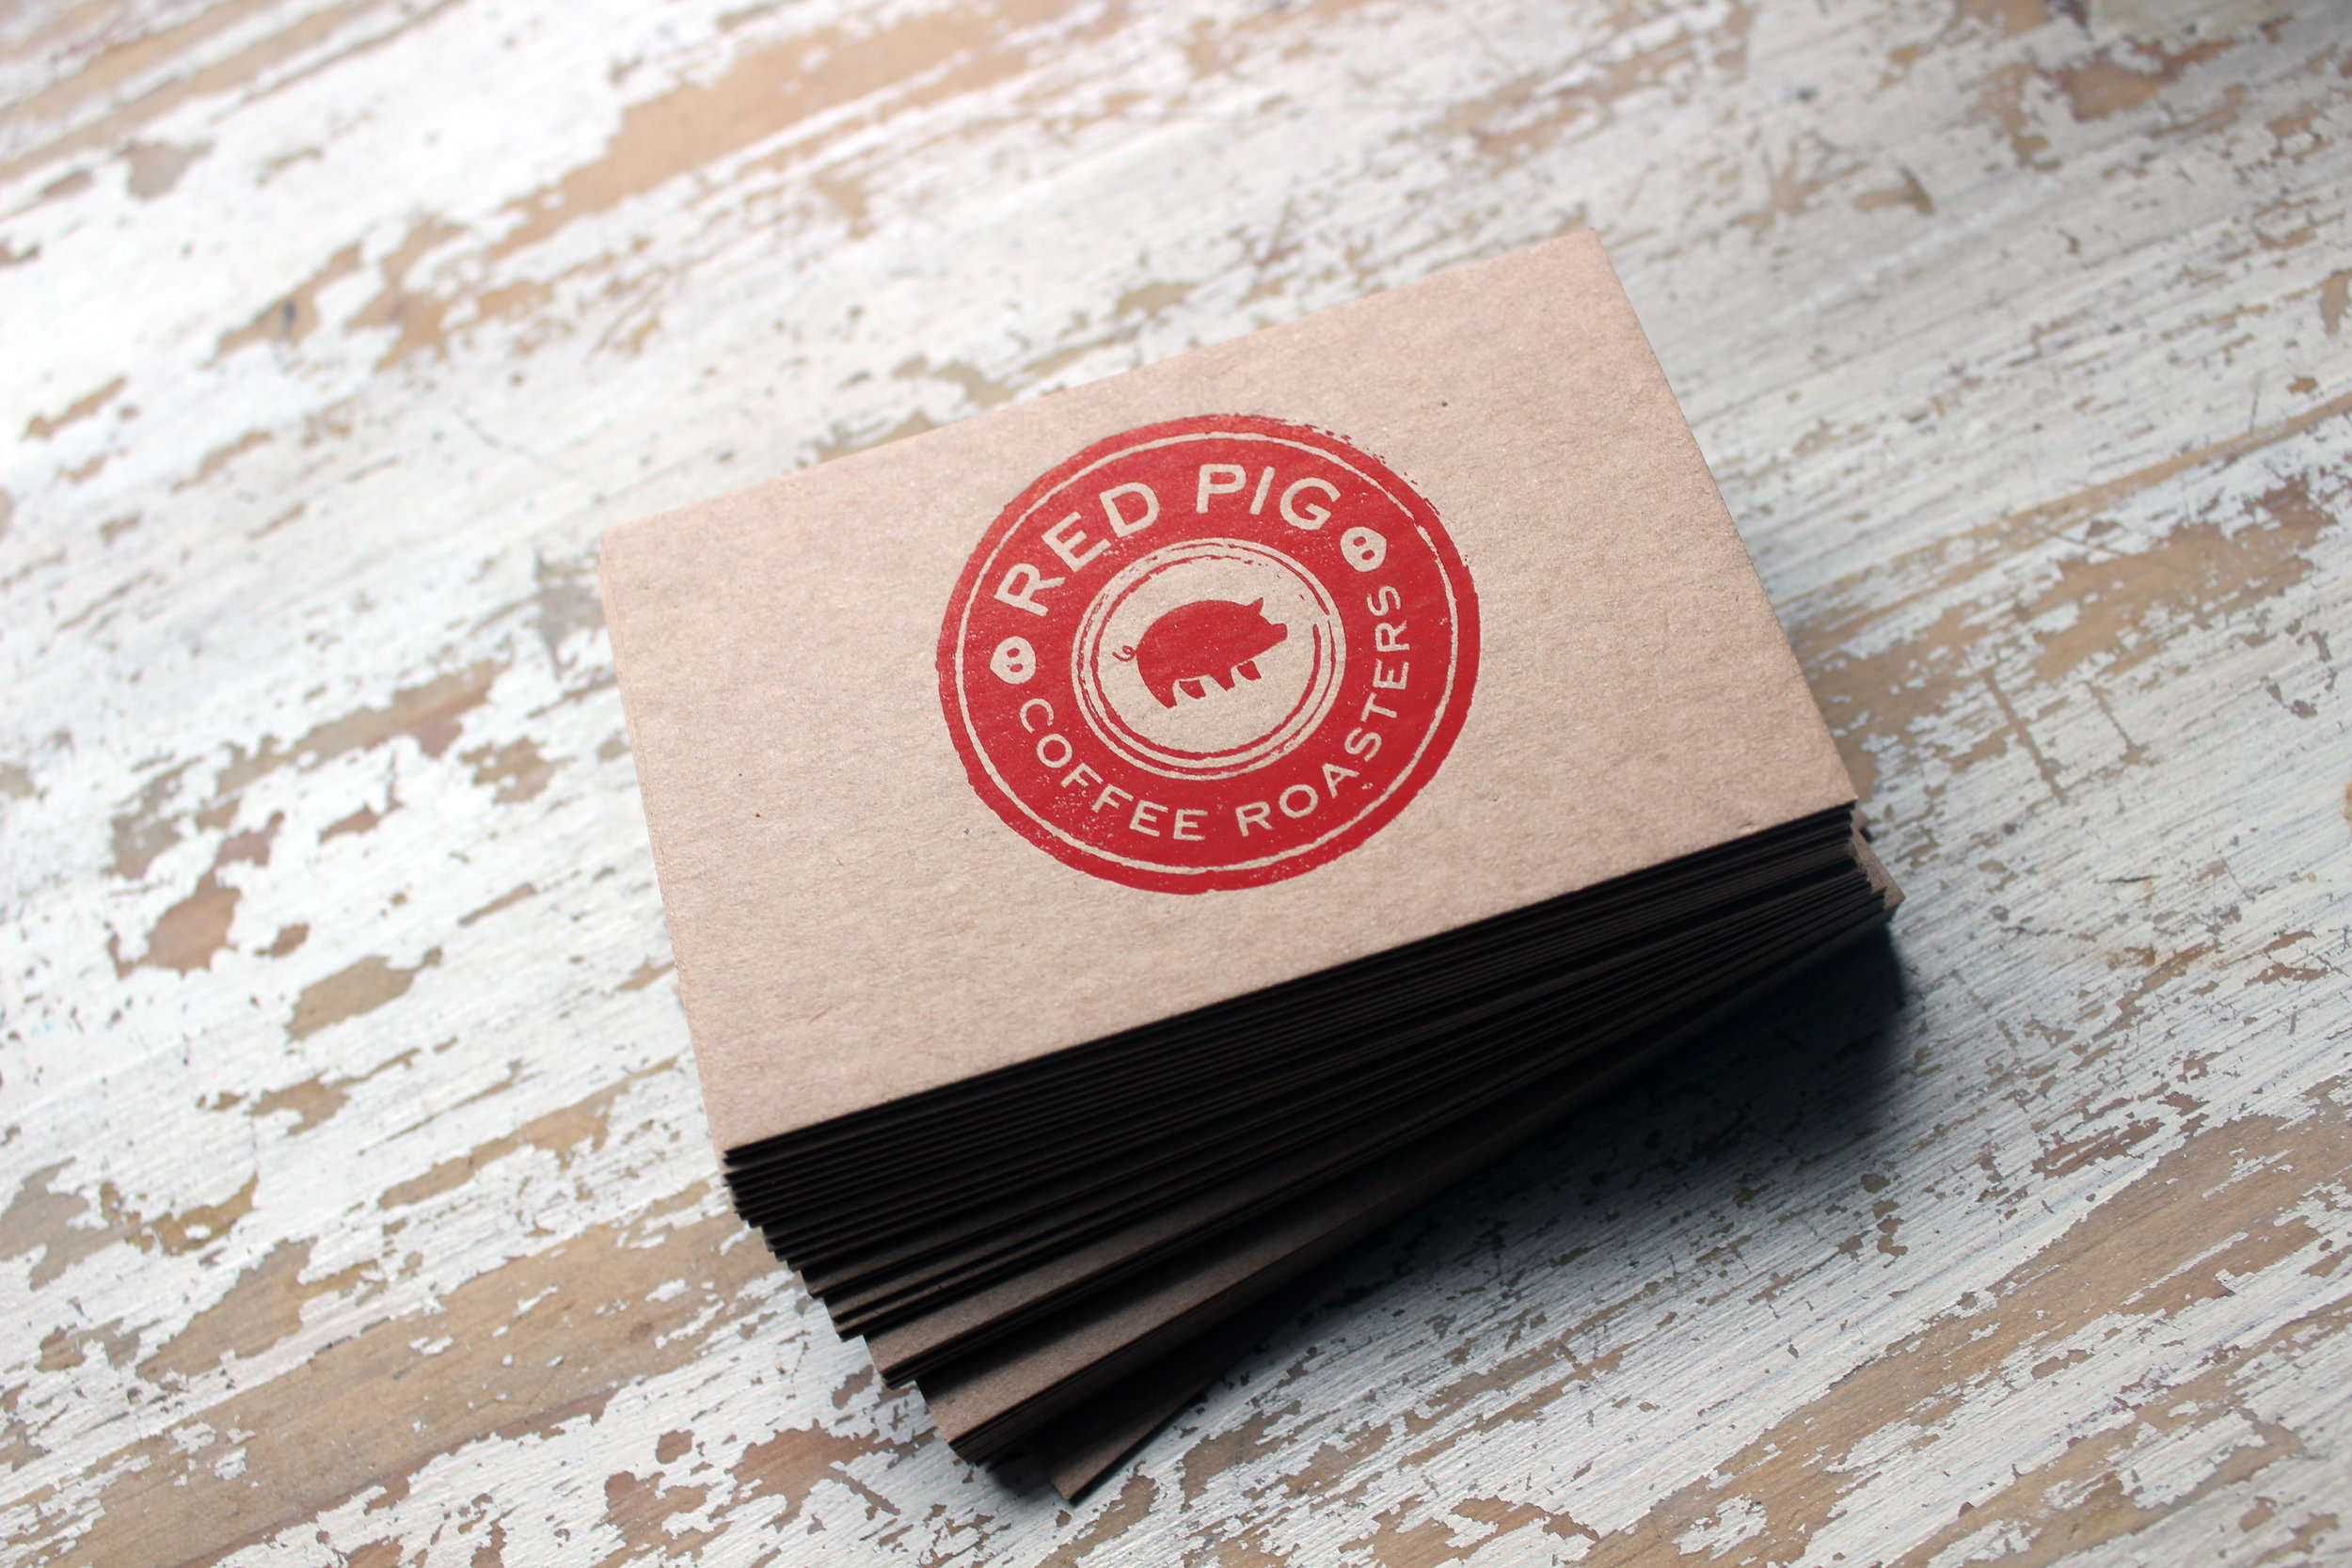 Business Cards For Red Pig Coffee